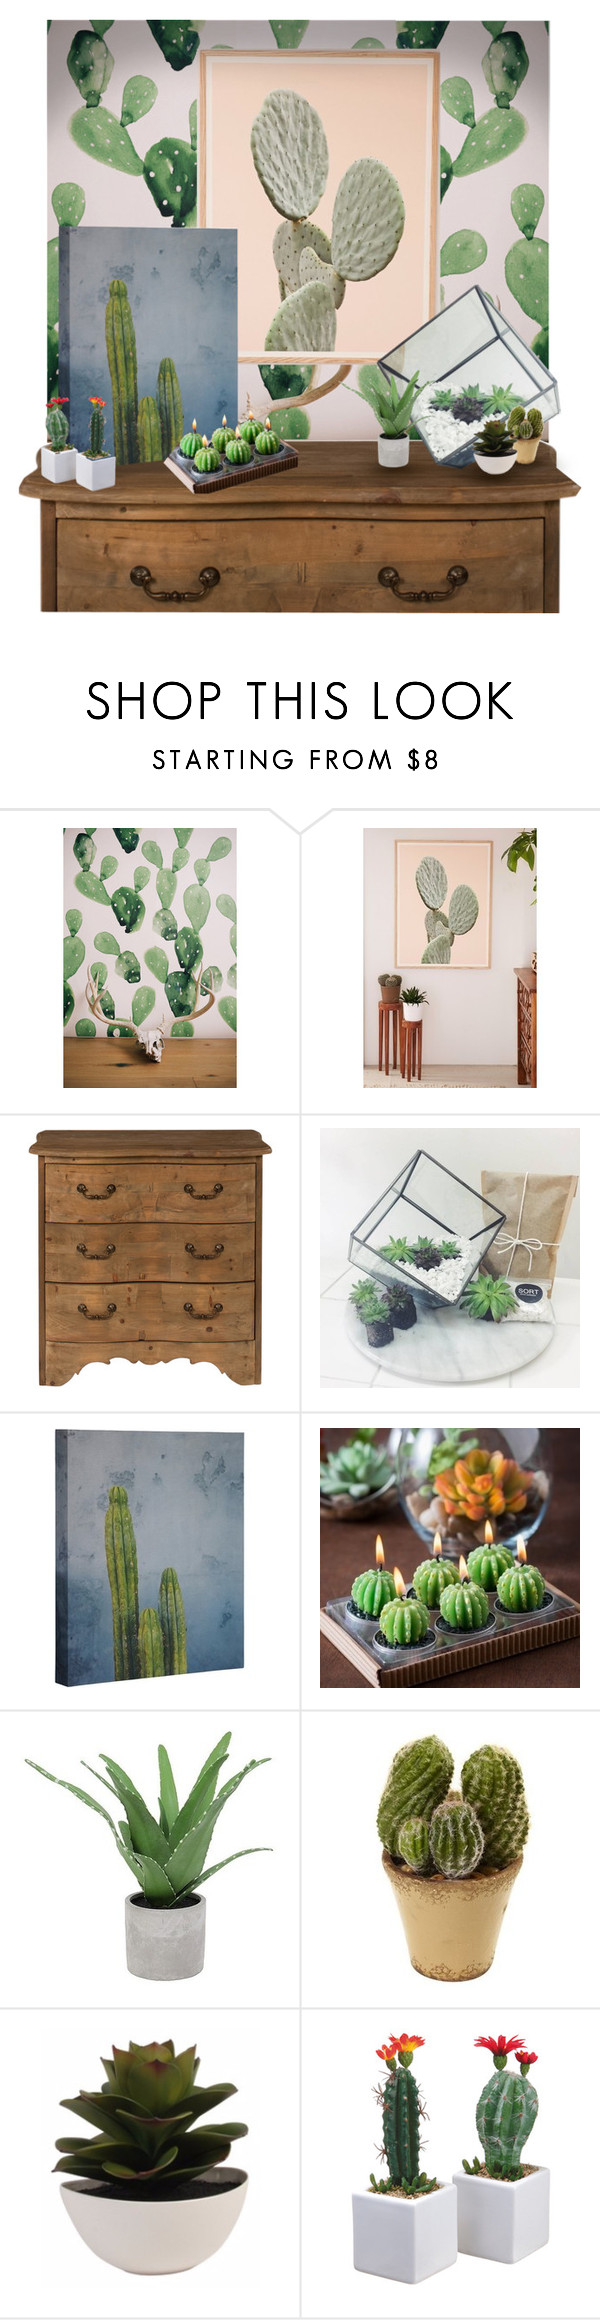 """""""CACTUS DECOR"""" by newconcettodimoda ❤ liked on Polyvore featuring interior, interiors, interior design, home, home decor, interior decorating, Urban Outfitters, Threshold and Nearly Natural"""